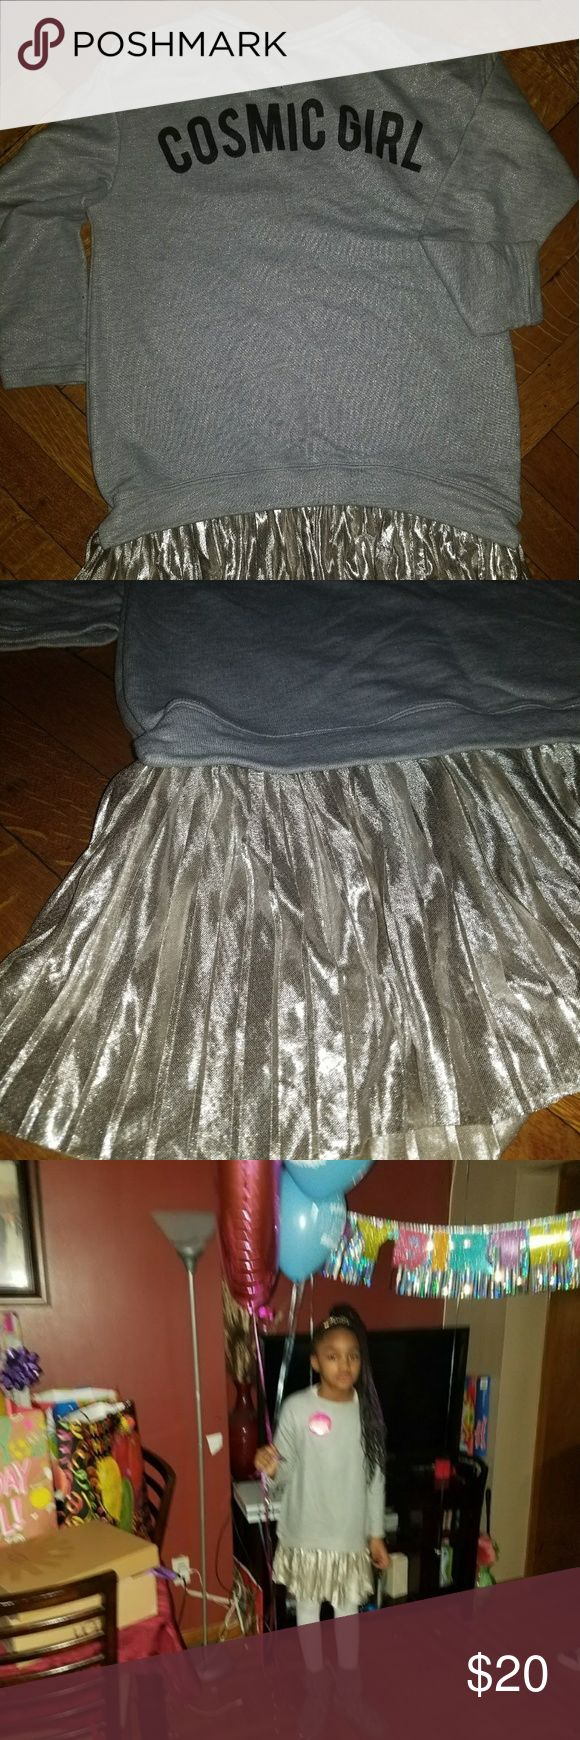 """Zara Girls Dress (Still In stores) Sz9/10 GIRLS Sweater Shimmer Dress, Worn for just a few hours 1st pic is the Back of the dress """"COSMIC GIRL""""...  Last pic is the Front. No stains/holes or odors. Pet & smoke free home. Zara Dresses"""